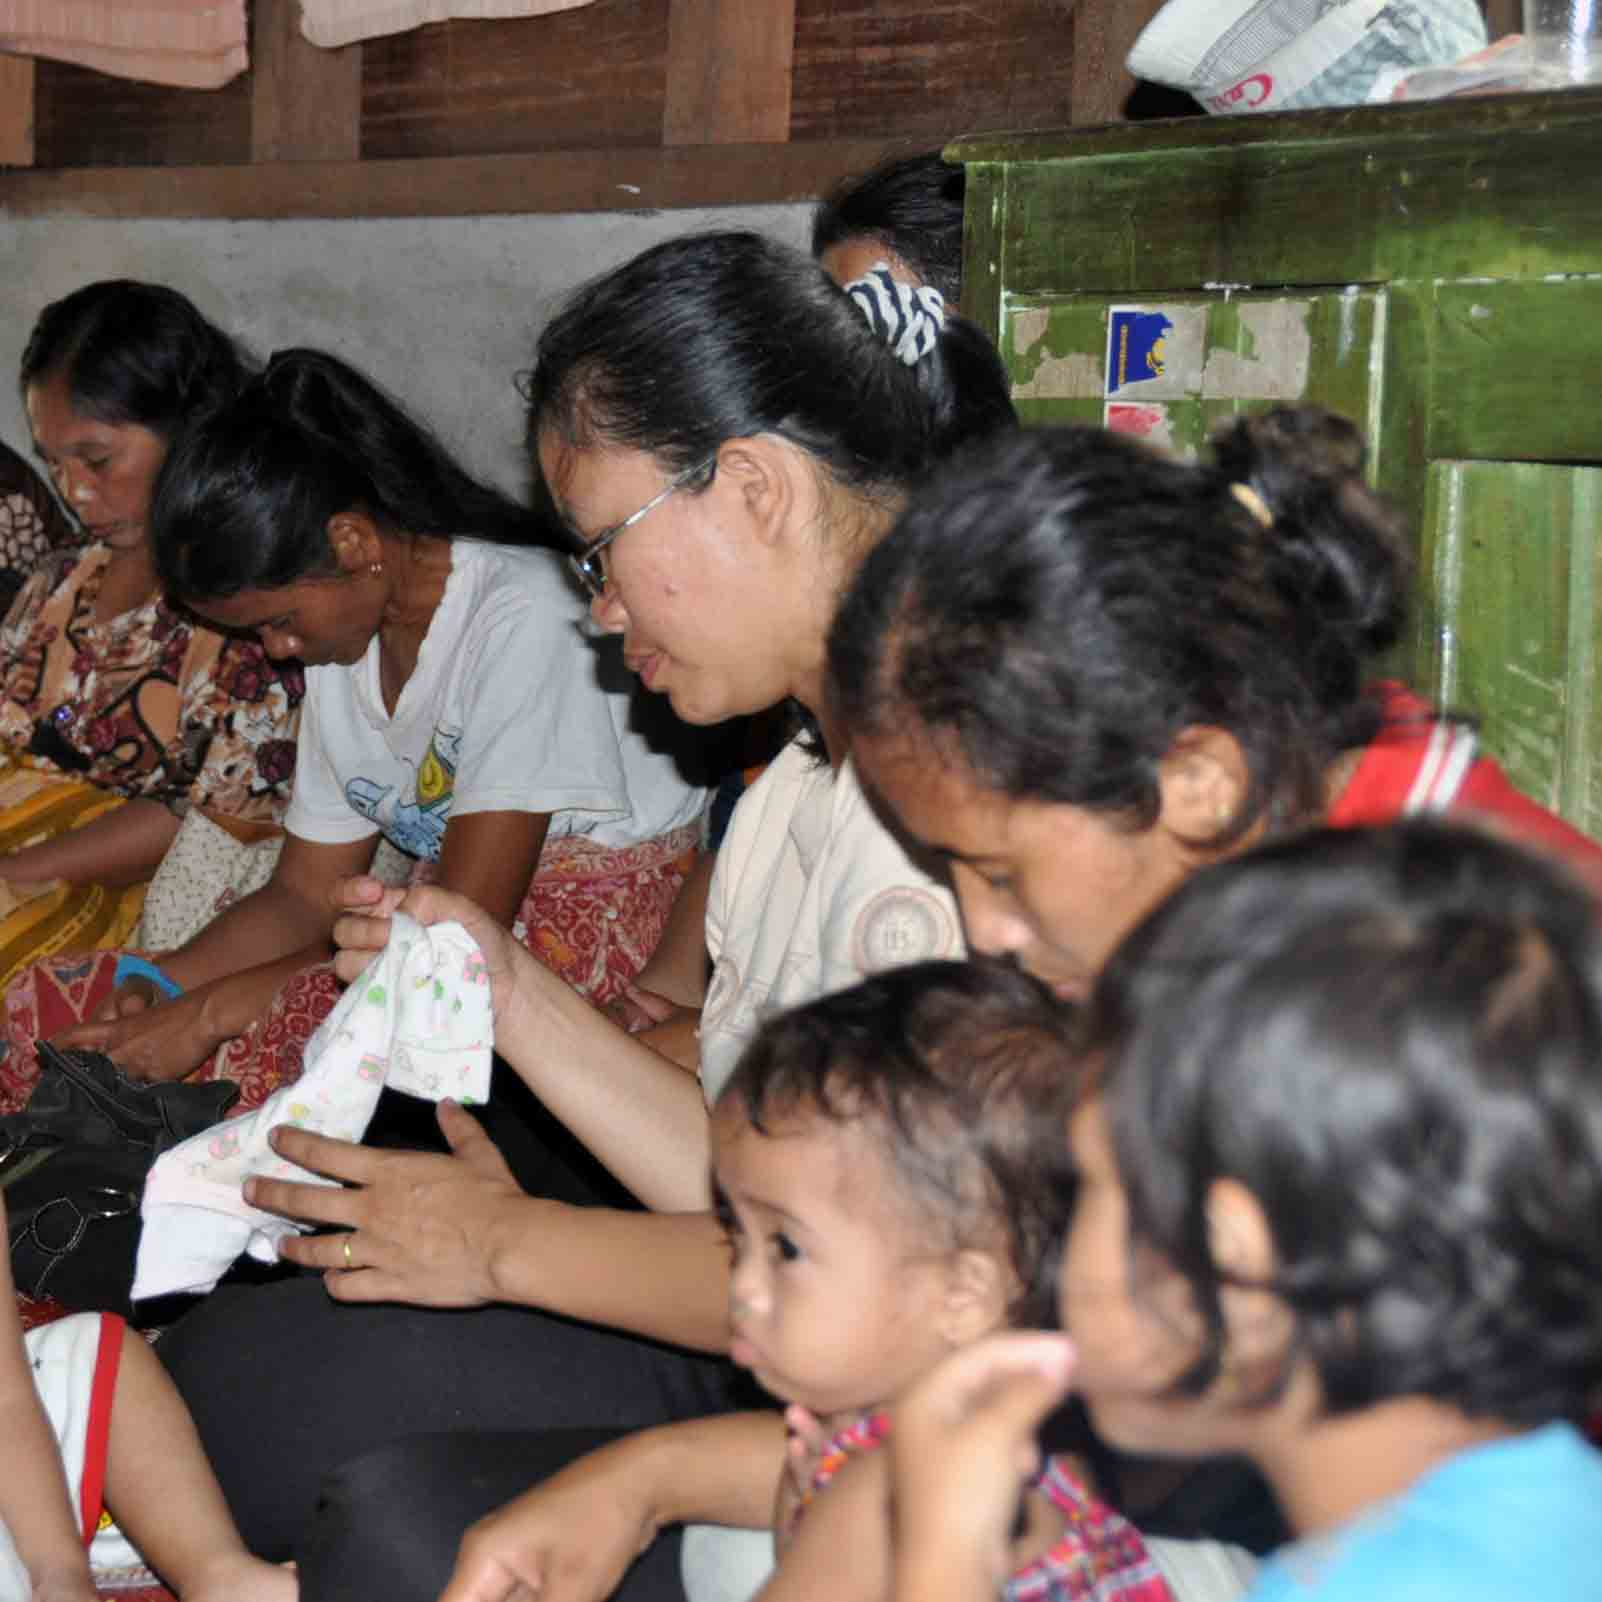 Christians in Indonesia gather in a house church meeting.